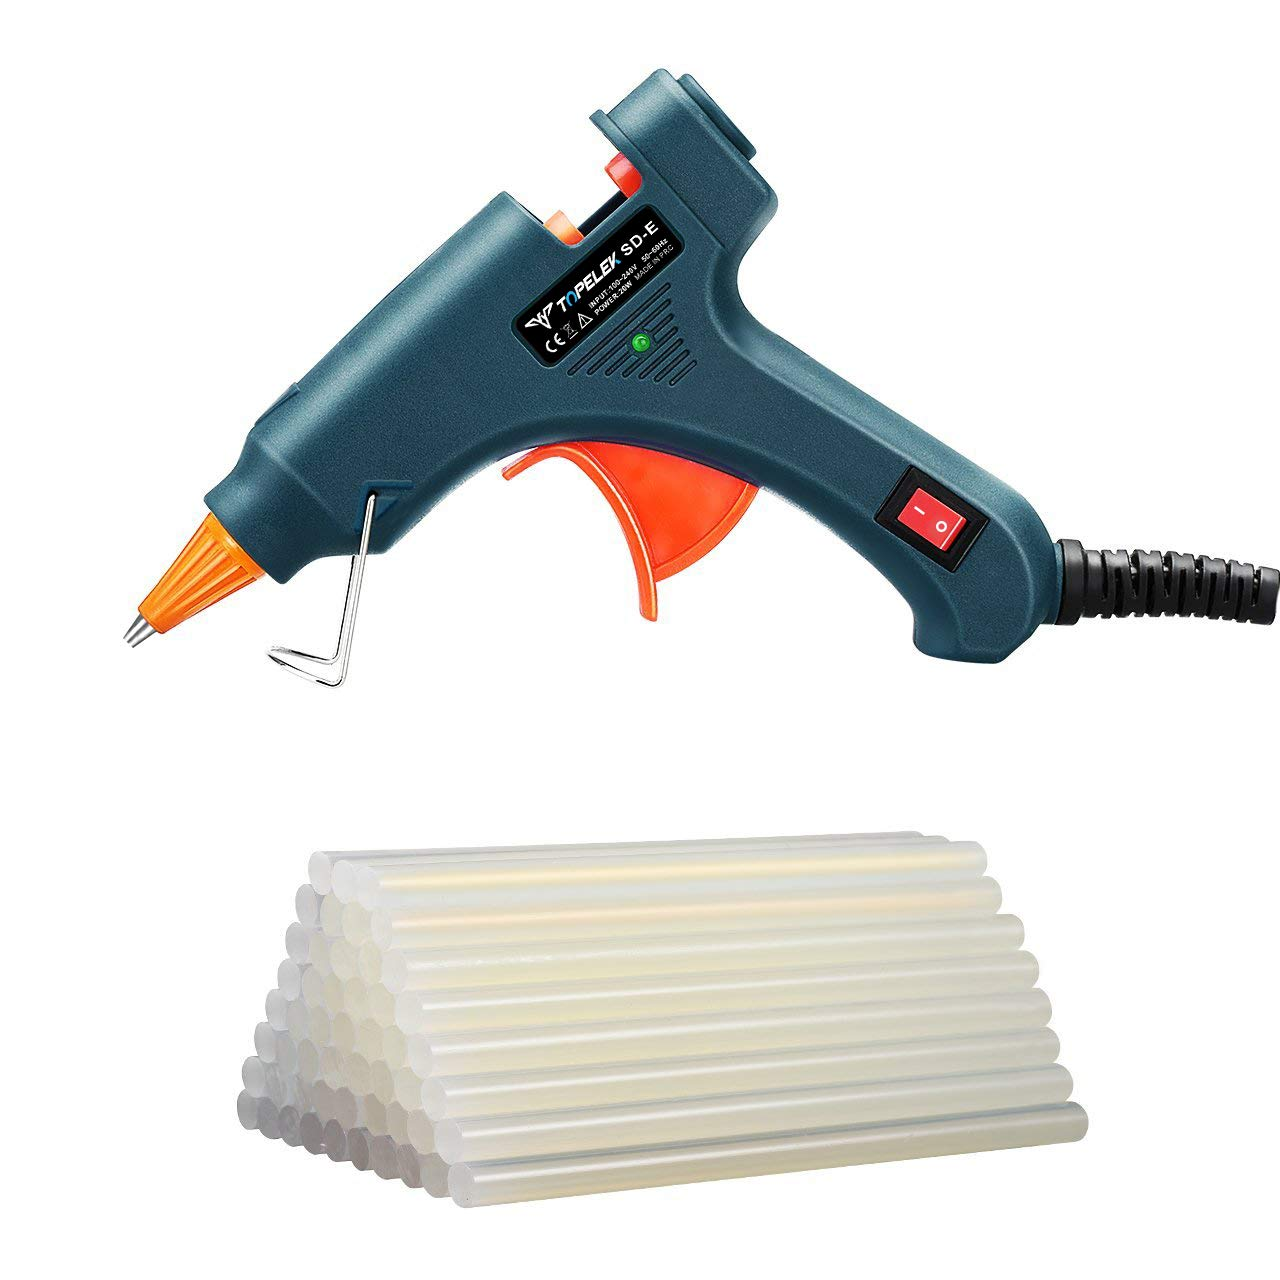 Hot Glue Gun, TopElek Glue Gun Kit with 50pcs Glue Sticks, High Temperature Melting Glue Gun for DIY Small Projects, Arts and Crafts, Home Quick Repairs,Artistic Creation(20 Watts, Green)